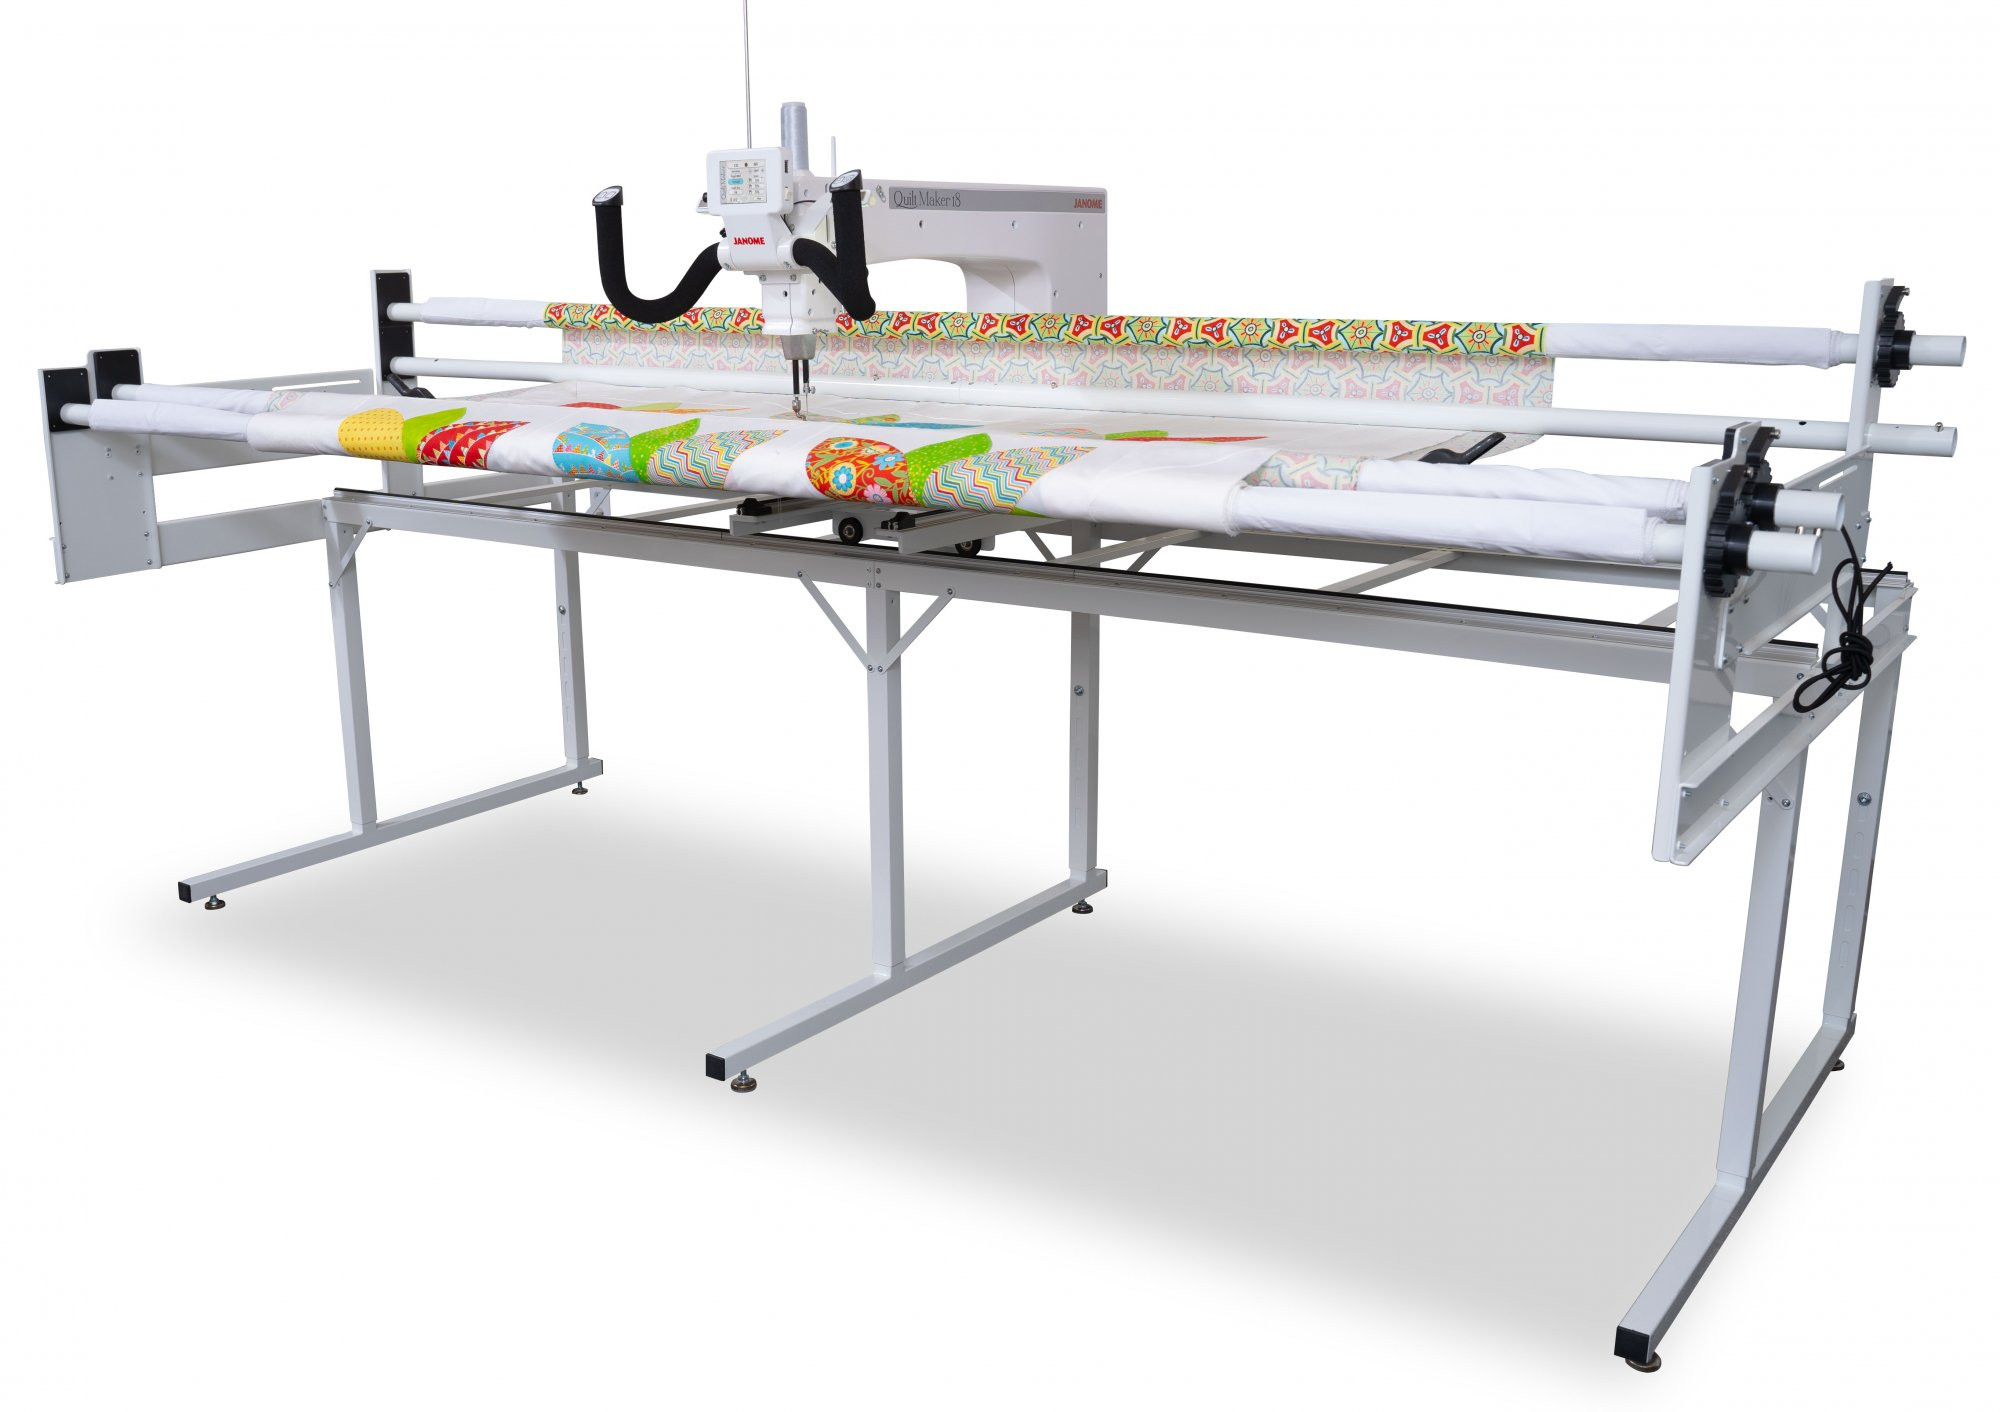 Quilt Maker 18 Long Arm with 8' Frame